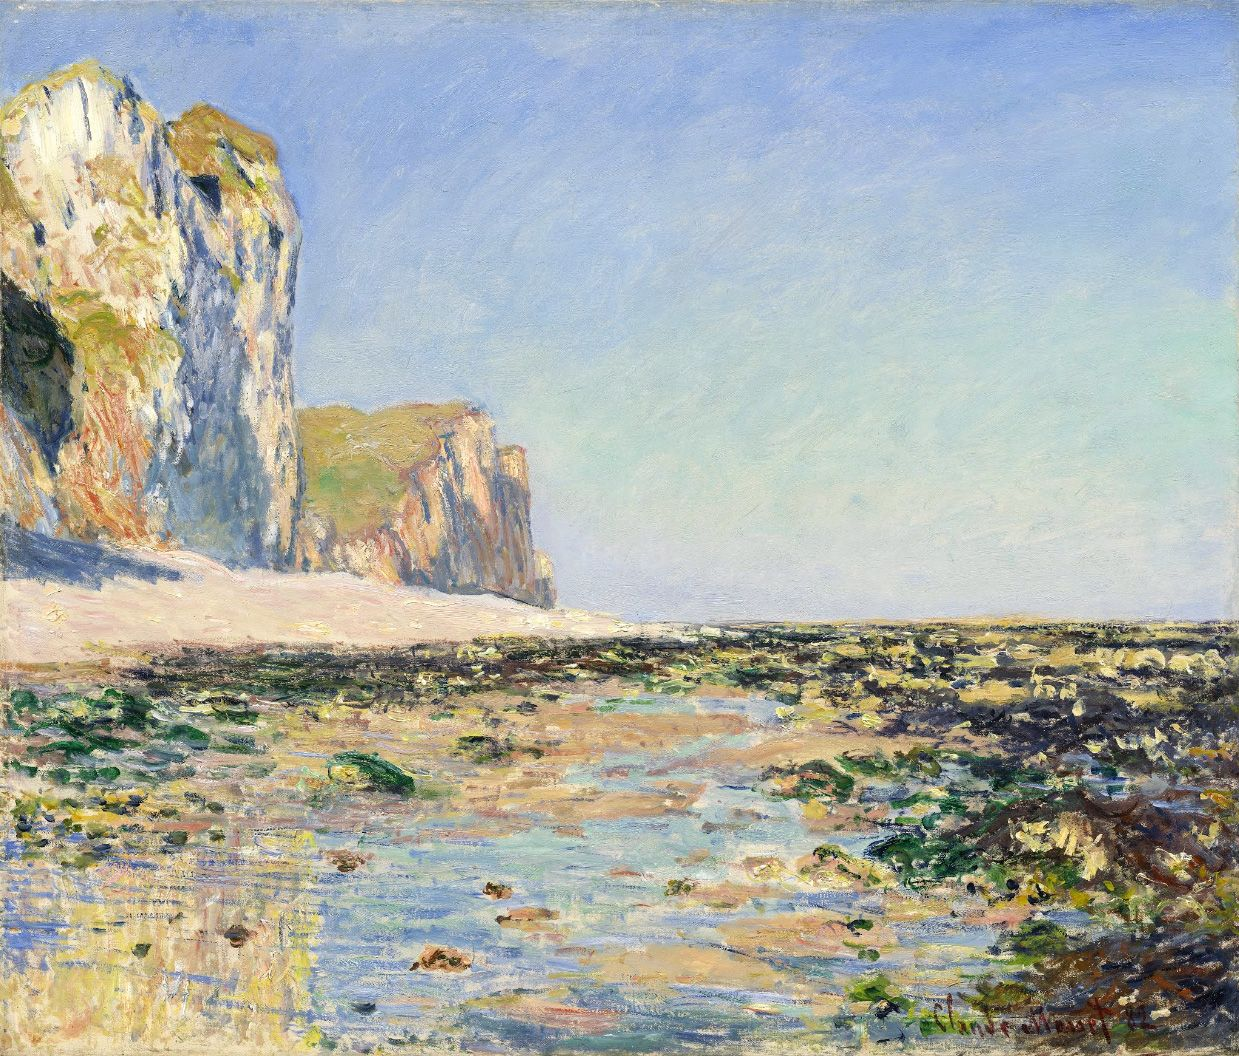 Claude Monet / Seashore and Cliffs of Pourville in the Morning. Dimensions: w71 x h59 cm